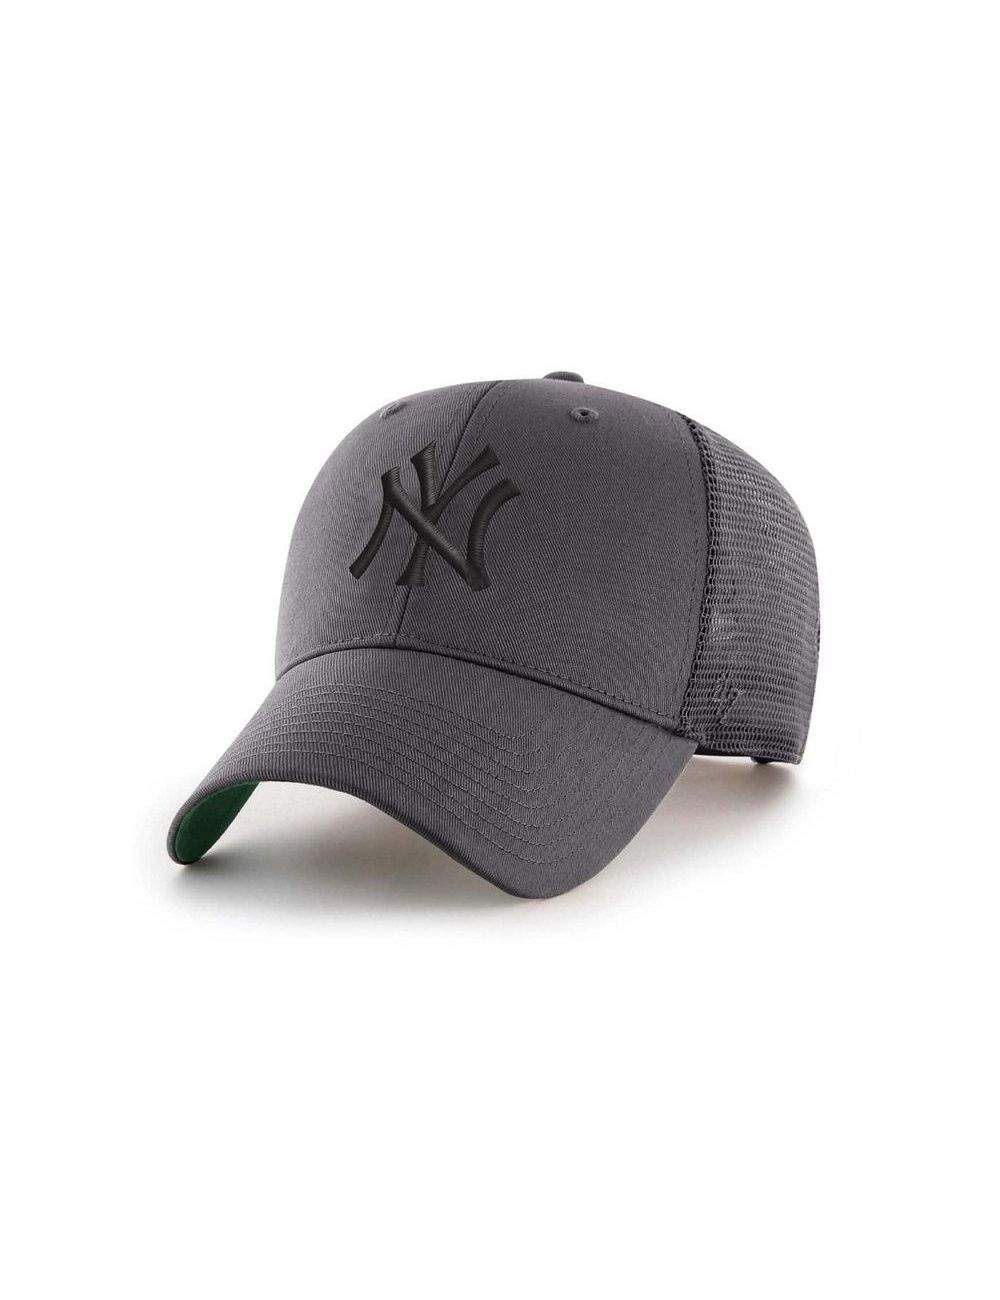 Casquette Trucker BRANSON New York Yankees